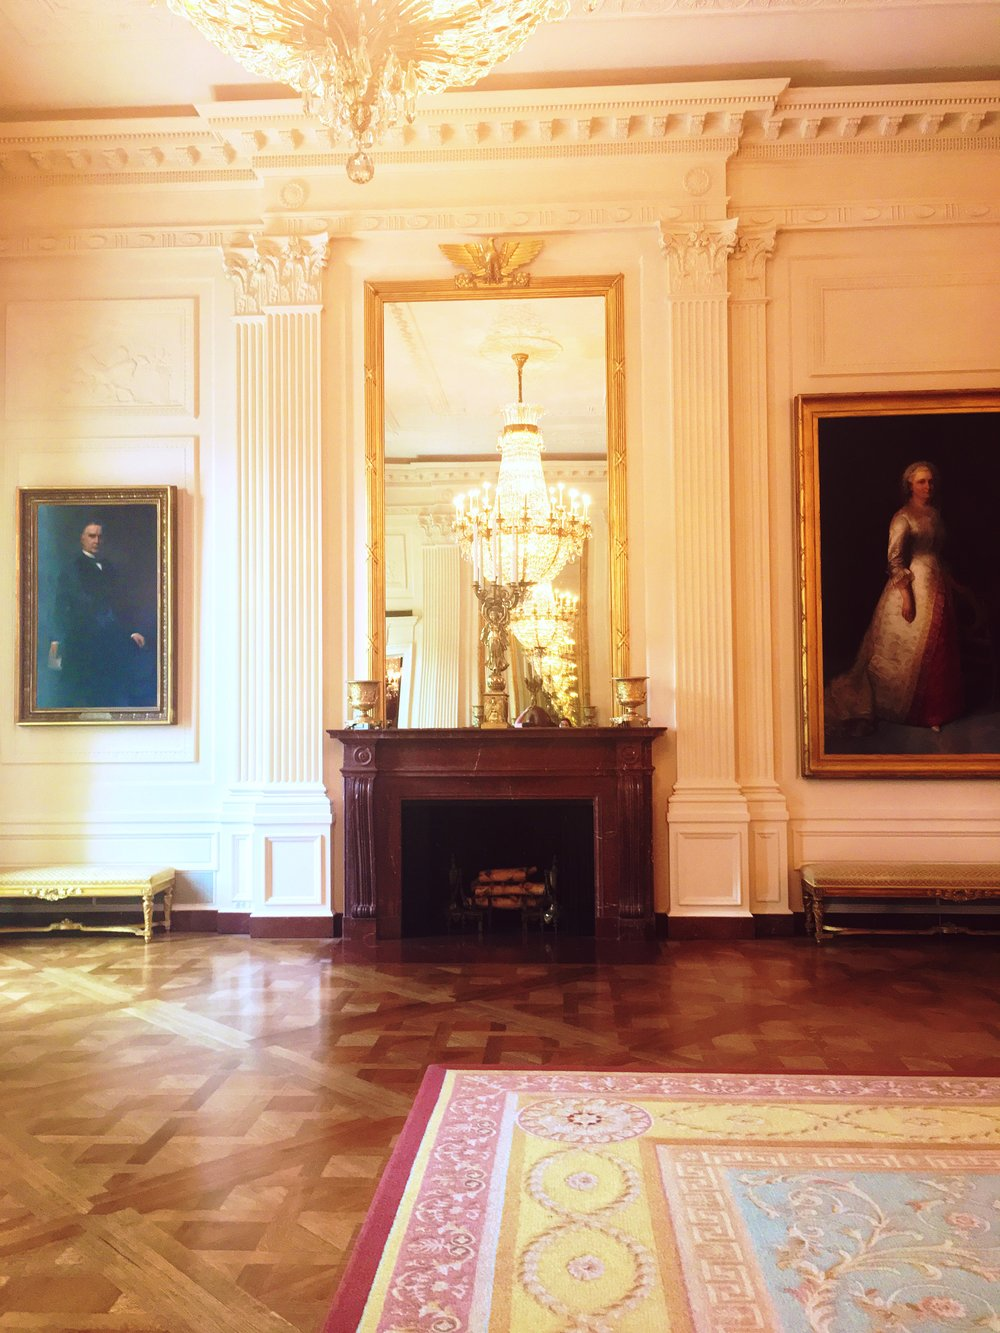 Portraits and finery in the East Room of the White House.